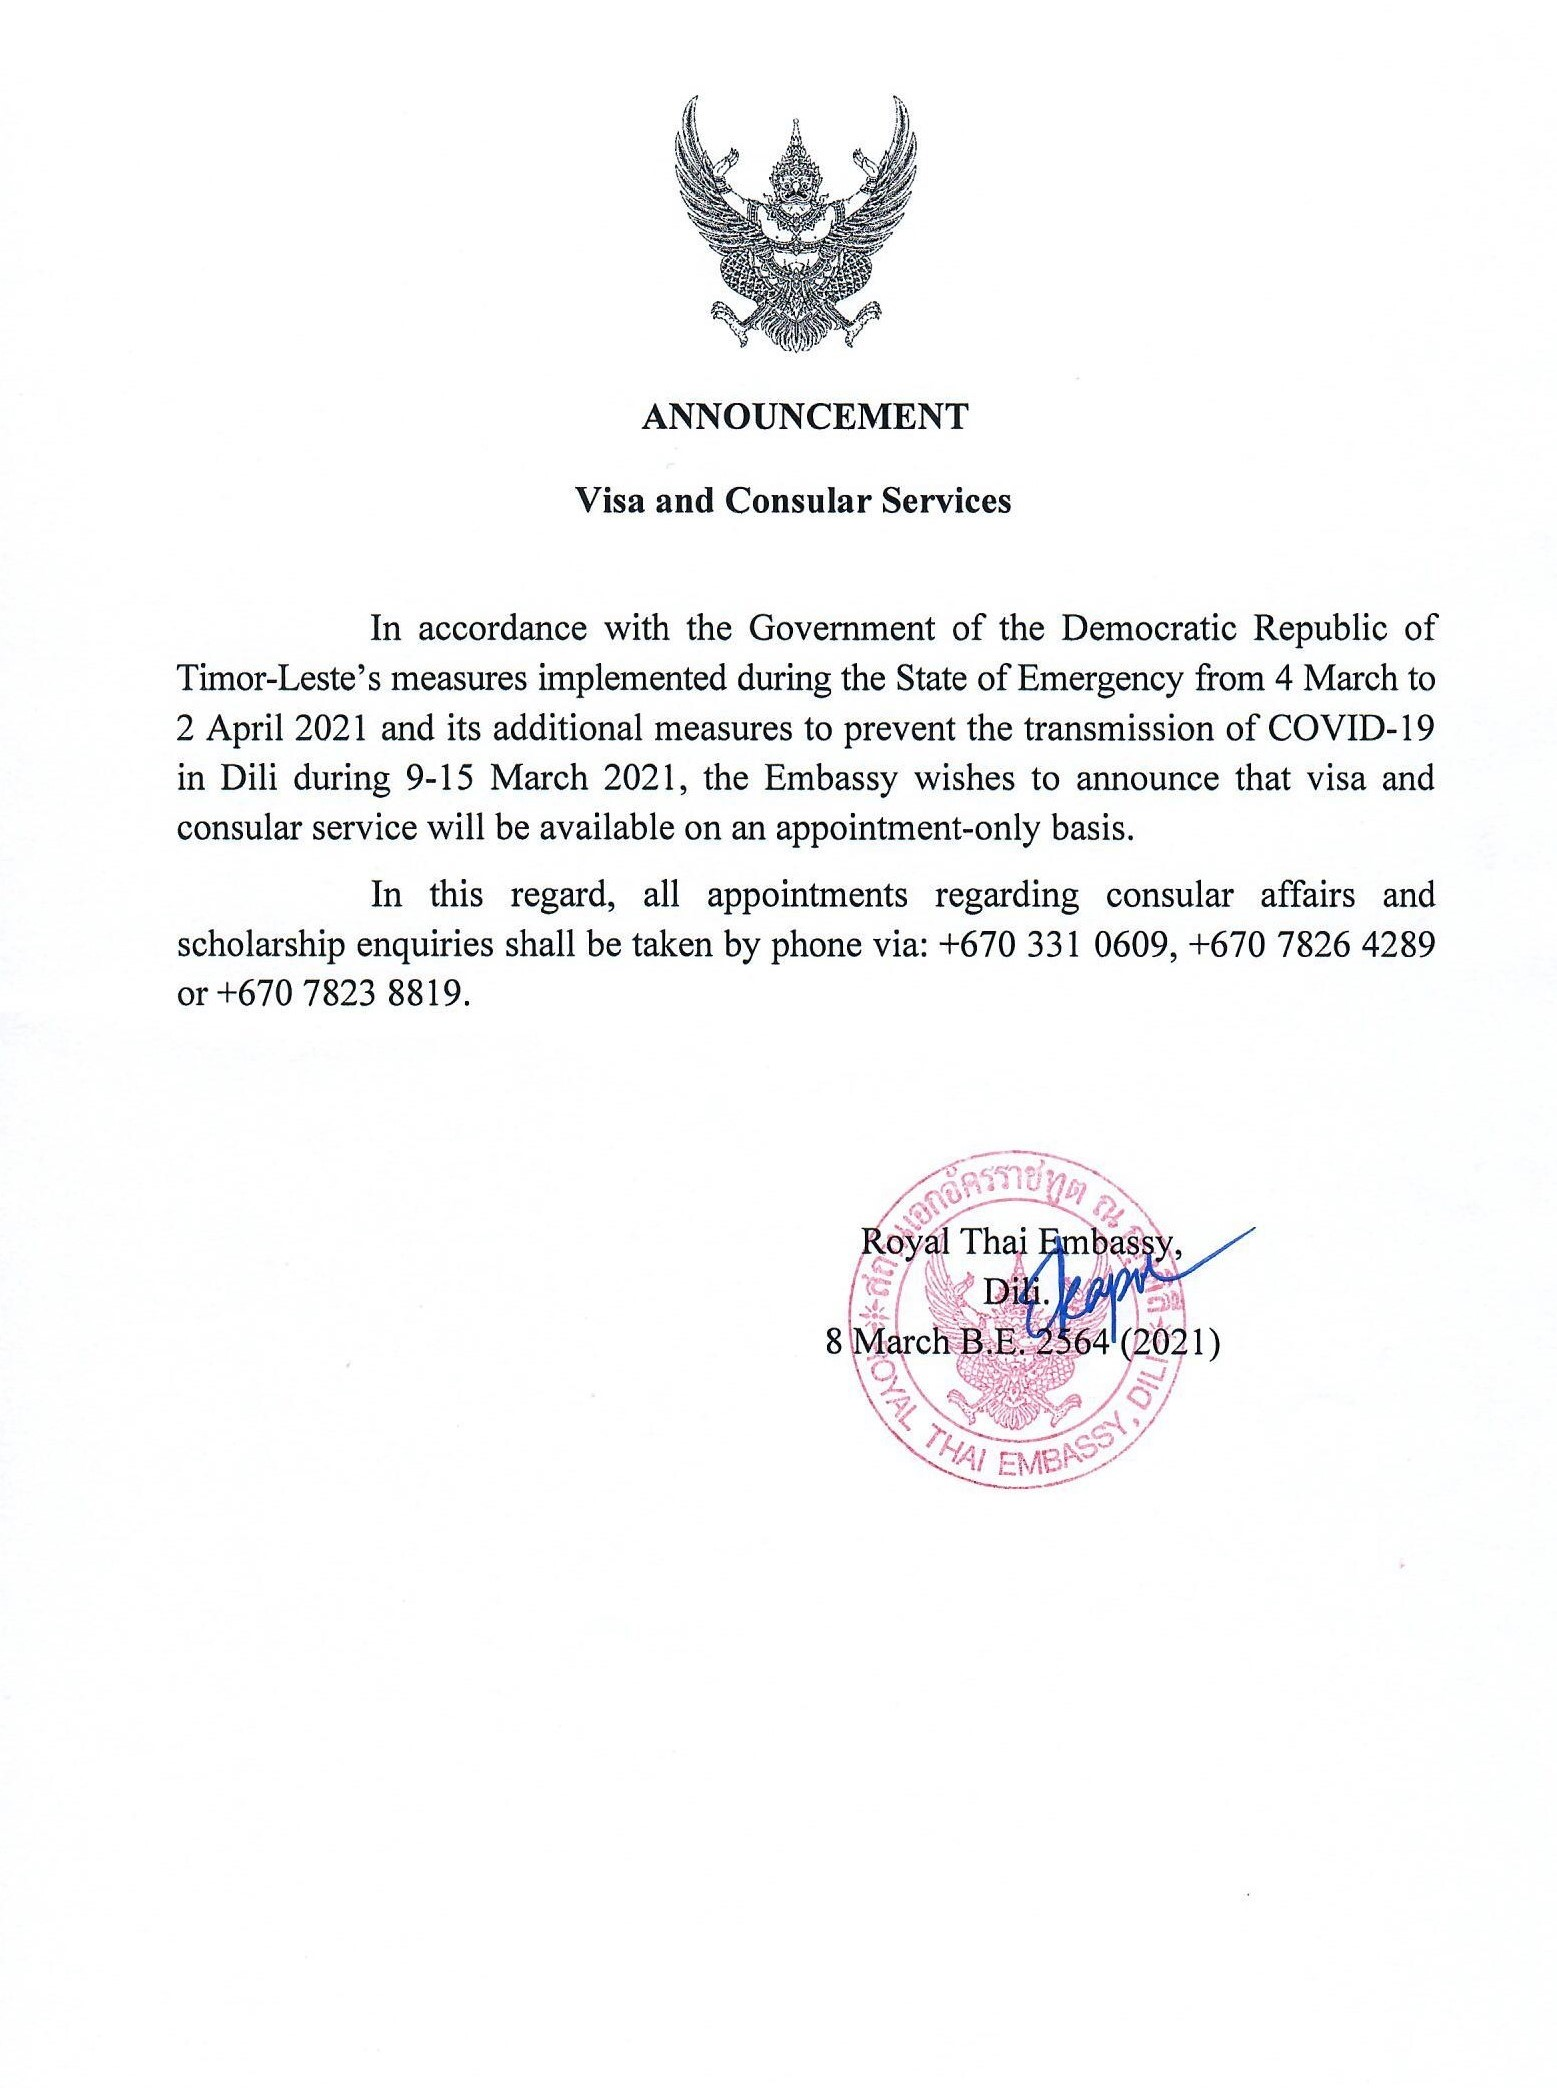 Announcement_on_Visa_and_Consular_Services